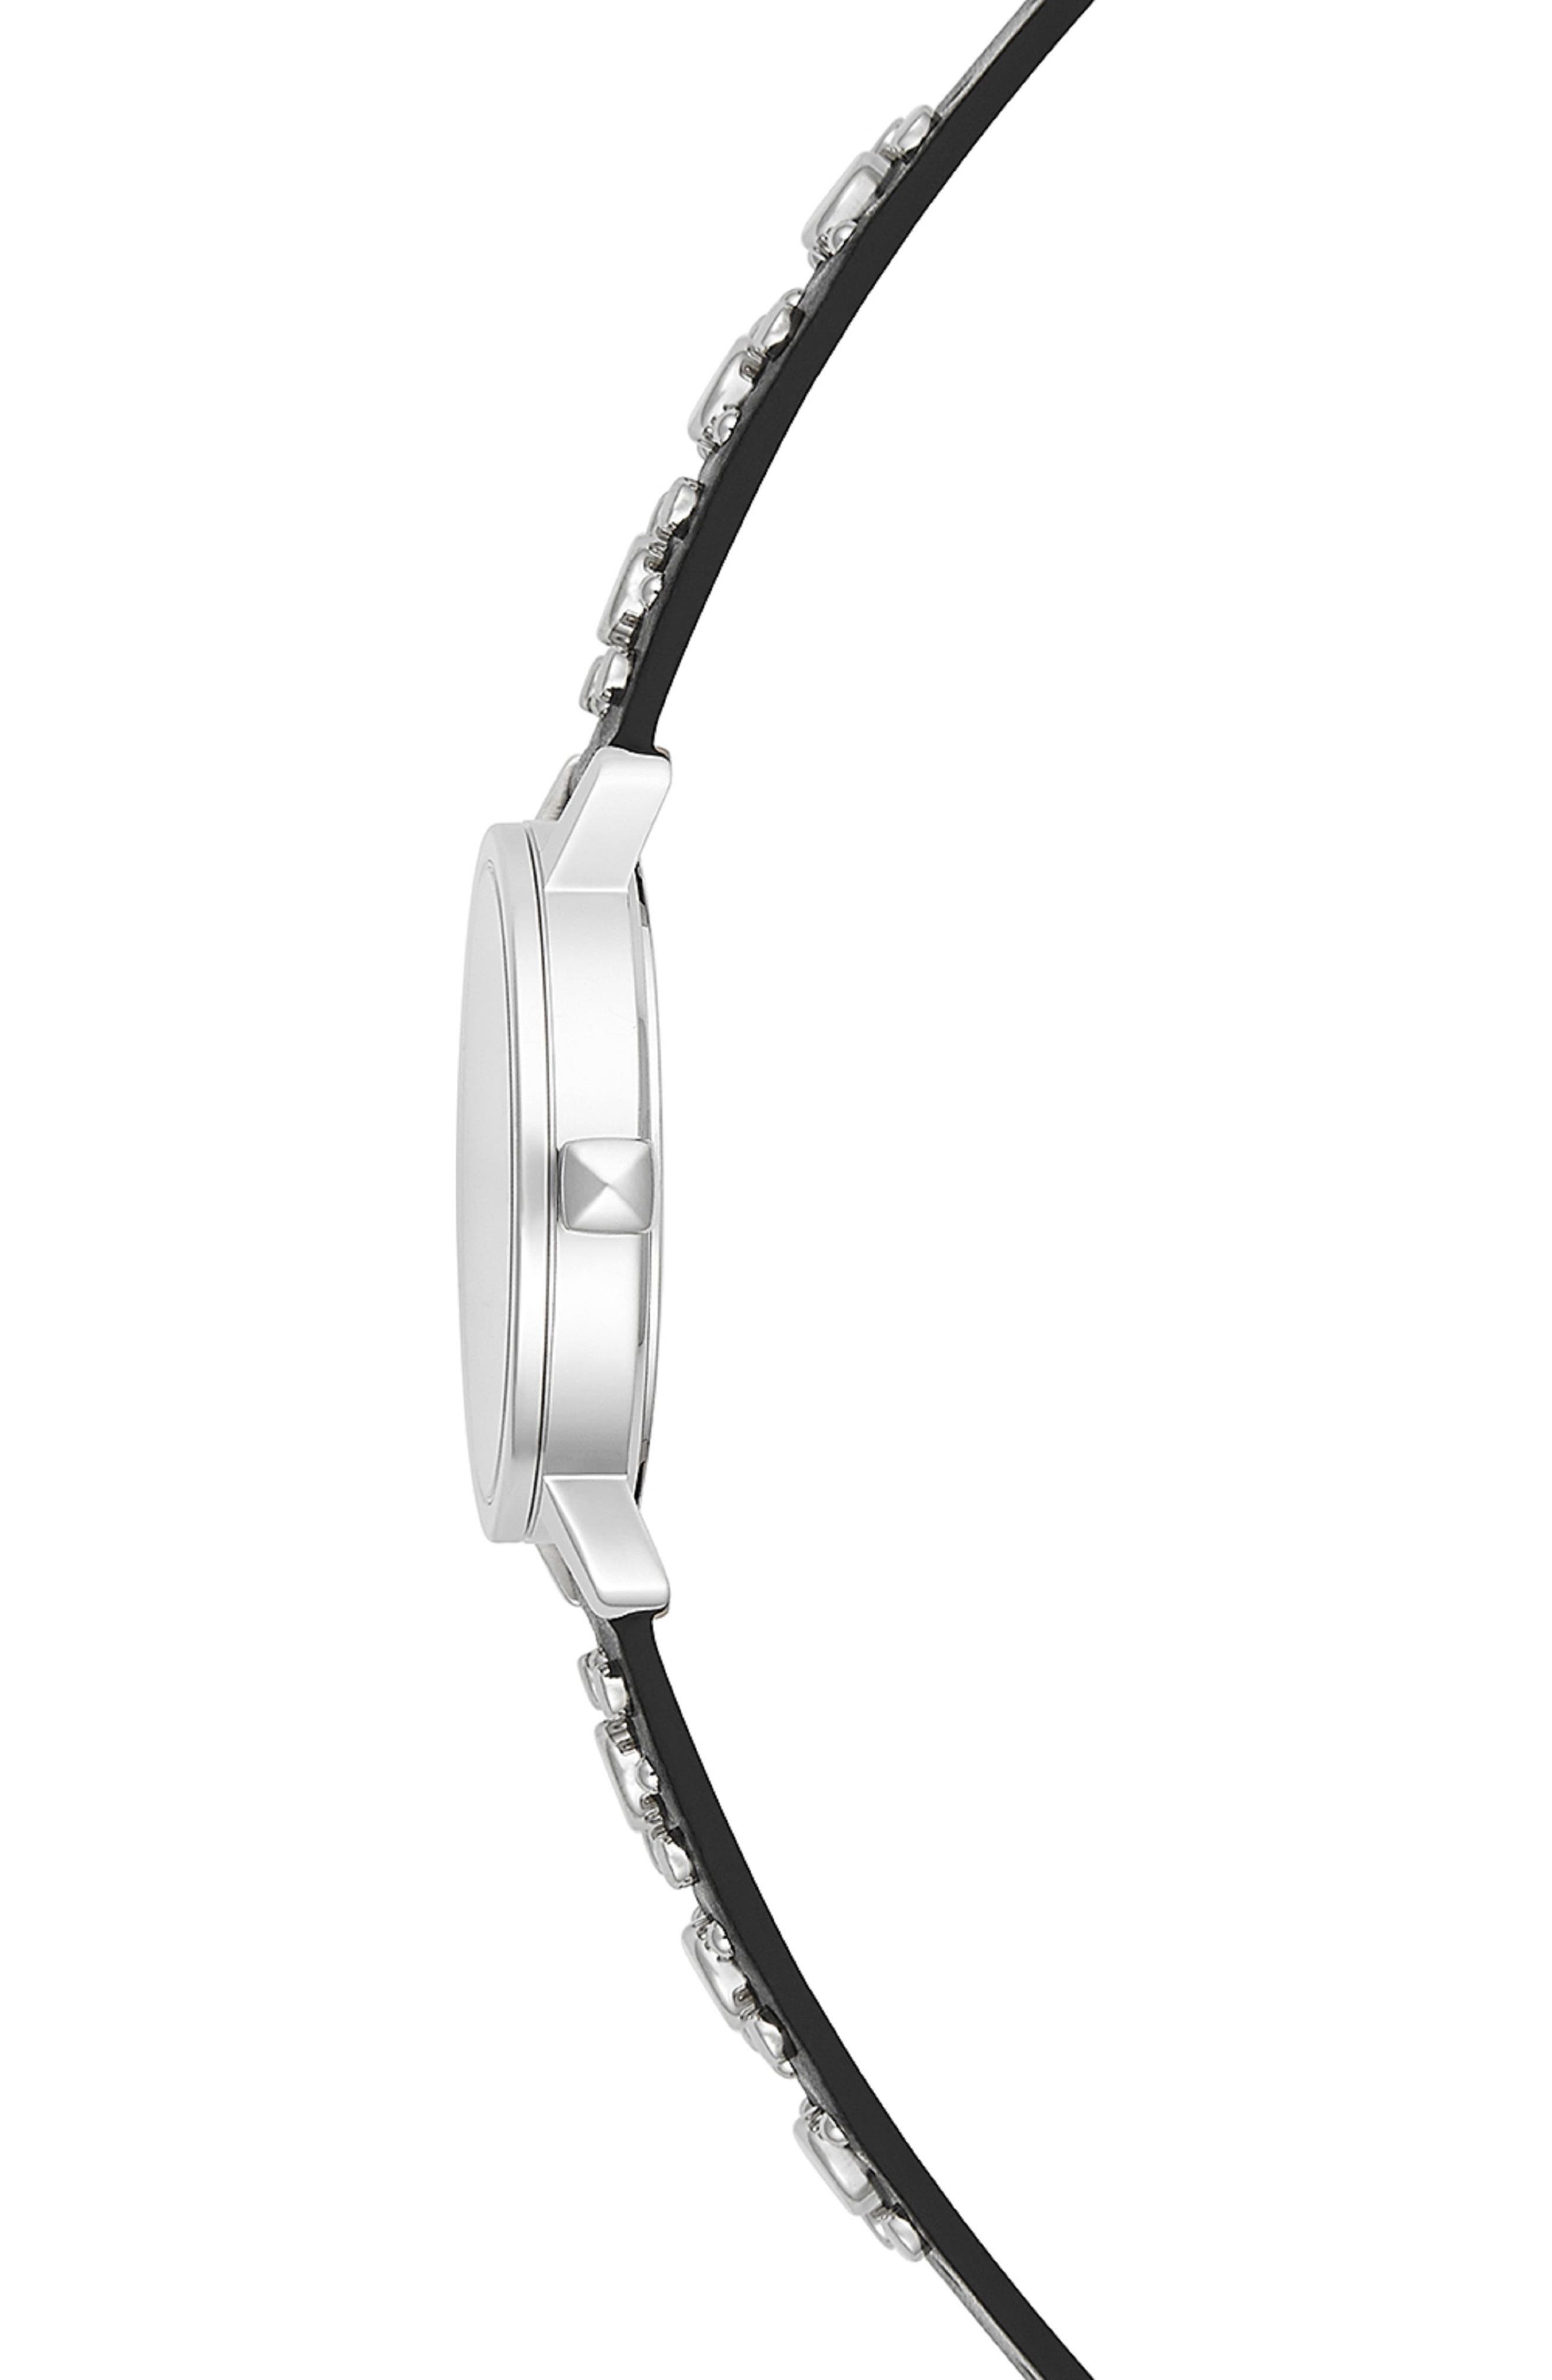 REBECCA MINKOFF,                             BFFL Studded Leather Strap Watch, 36mm,                             Alternate thumbnail 3, color,                             BLACK/ SILVER WHITE/ SILVER